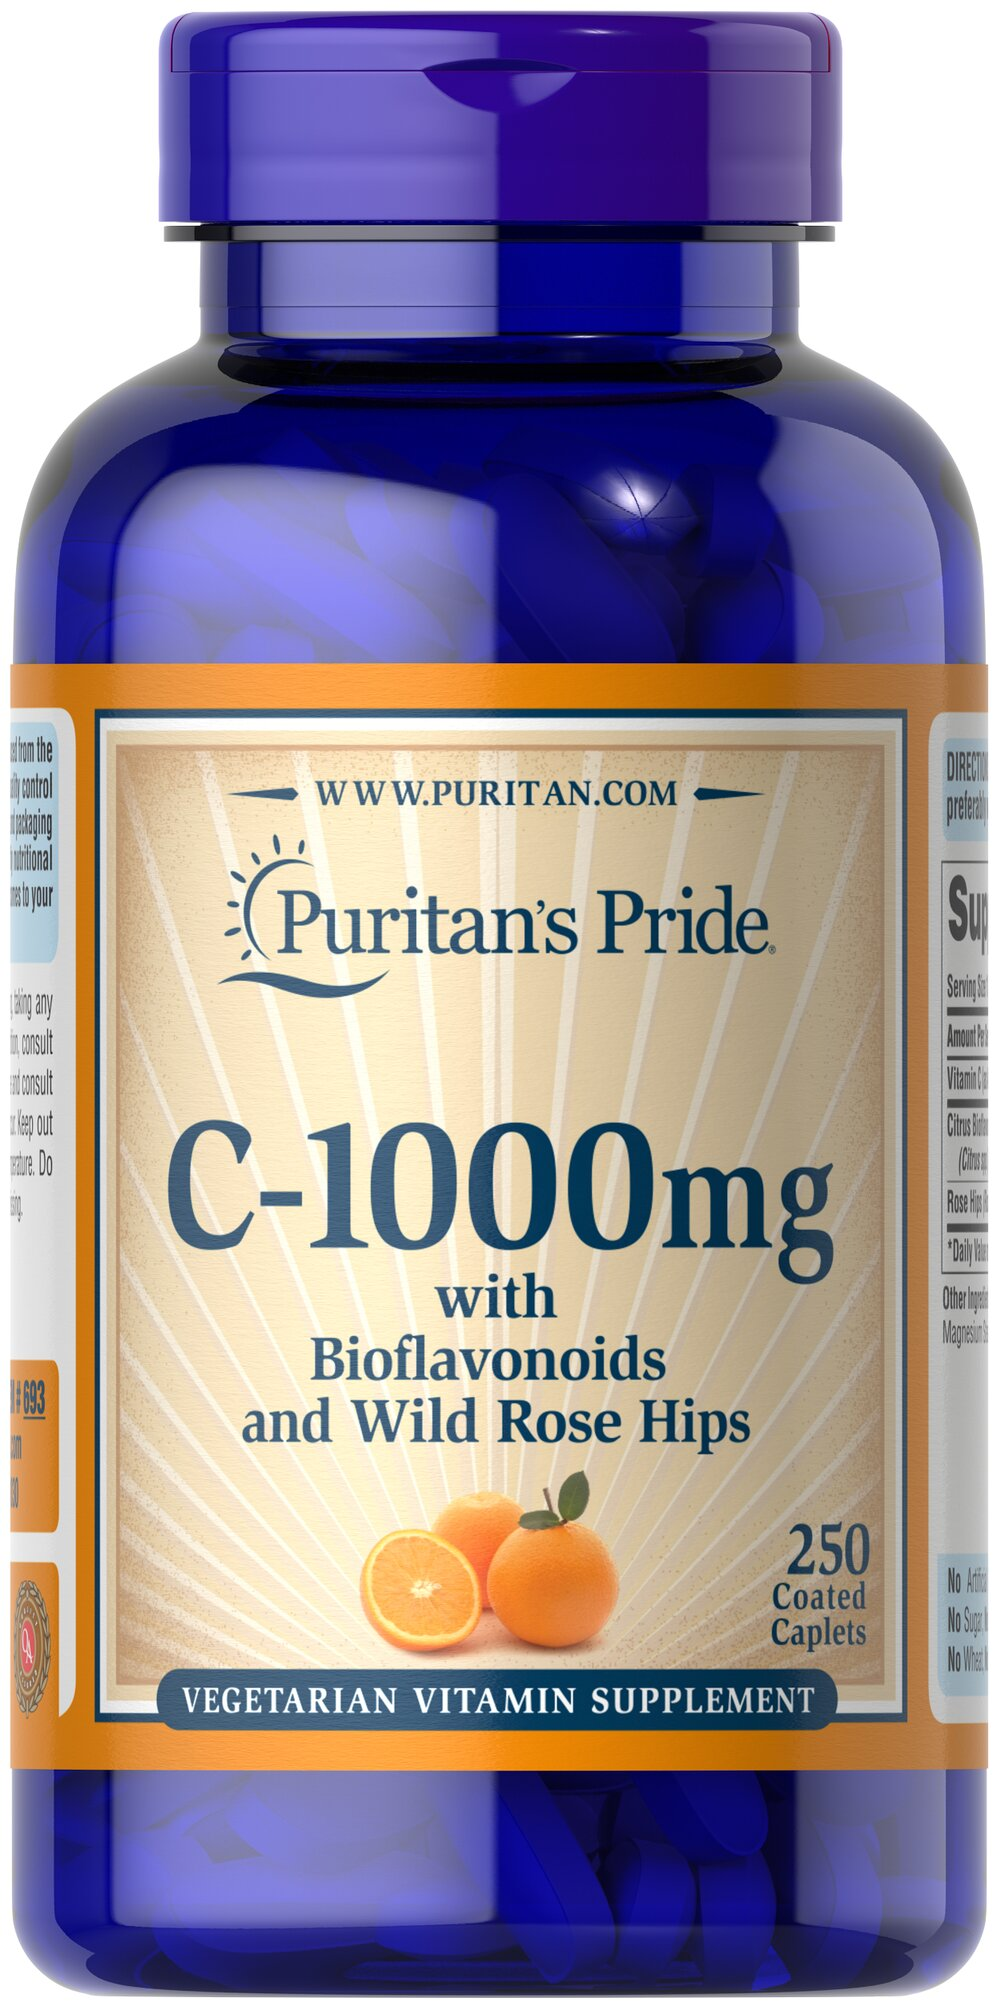 Vitamin C-1000 mg with Bioflavonoids & Rose Hips <p>Vitamin C  is essential to many functions in the body and is one of the leading vitamins for immune support and helps fight cell-damaging free radicals.**  Our product also includes Rose Hips, which help the body absorb and utilize Vitamin C.**</p><p>Offers superior antioxidant support.**</p><p>Supports healthy immune function and promotes well-being.**</p> 250 Caplets 1000 mg $23.99